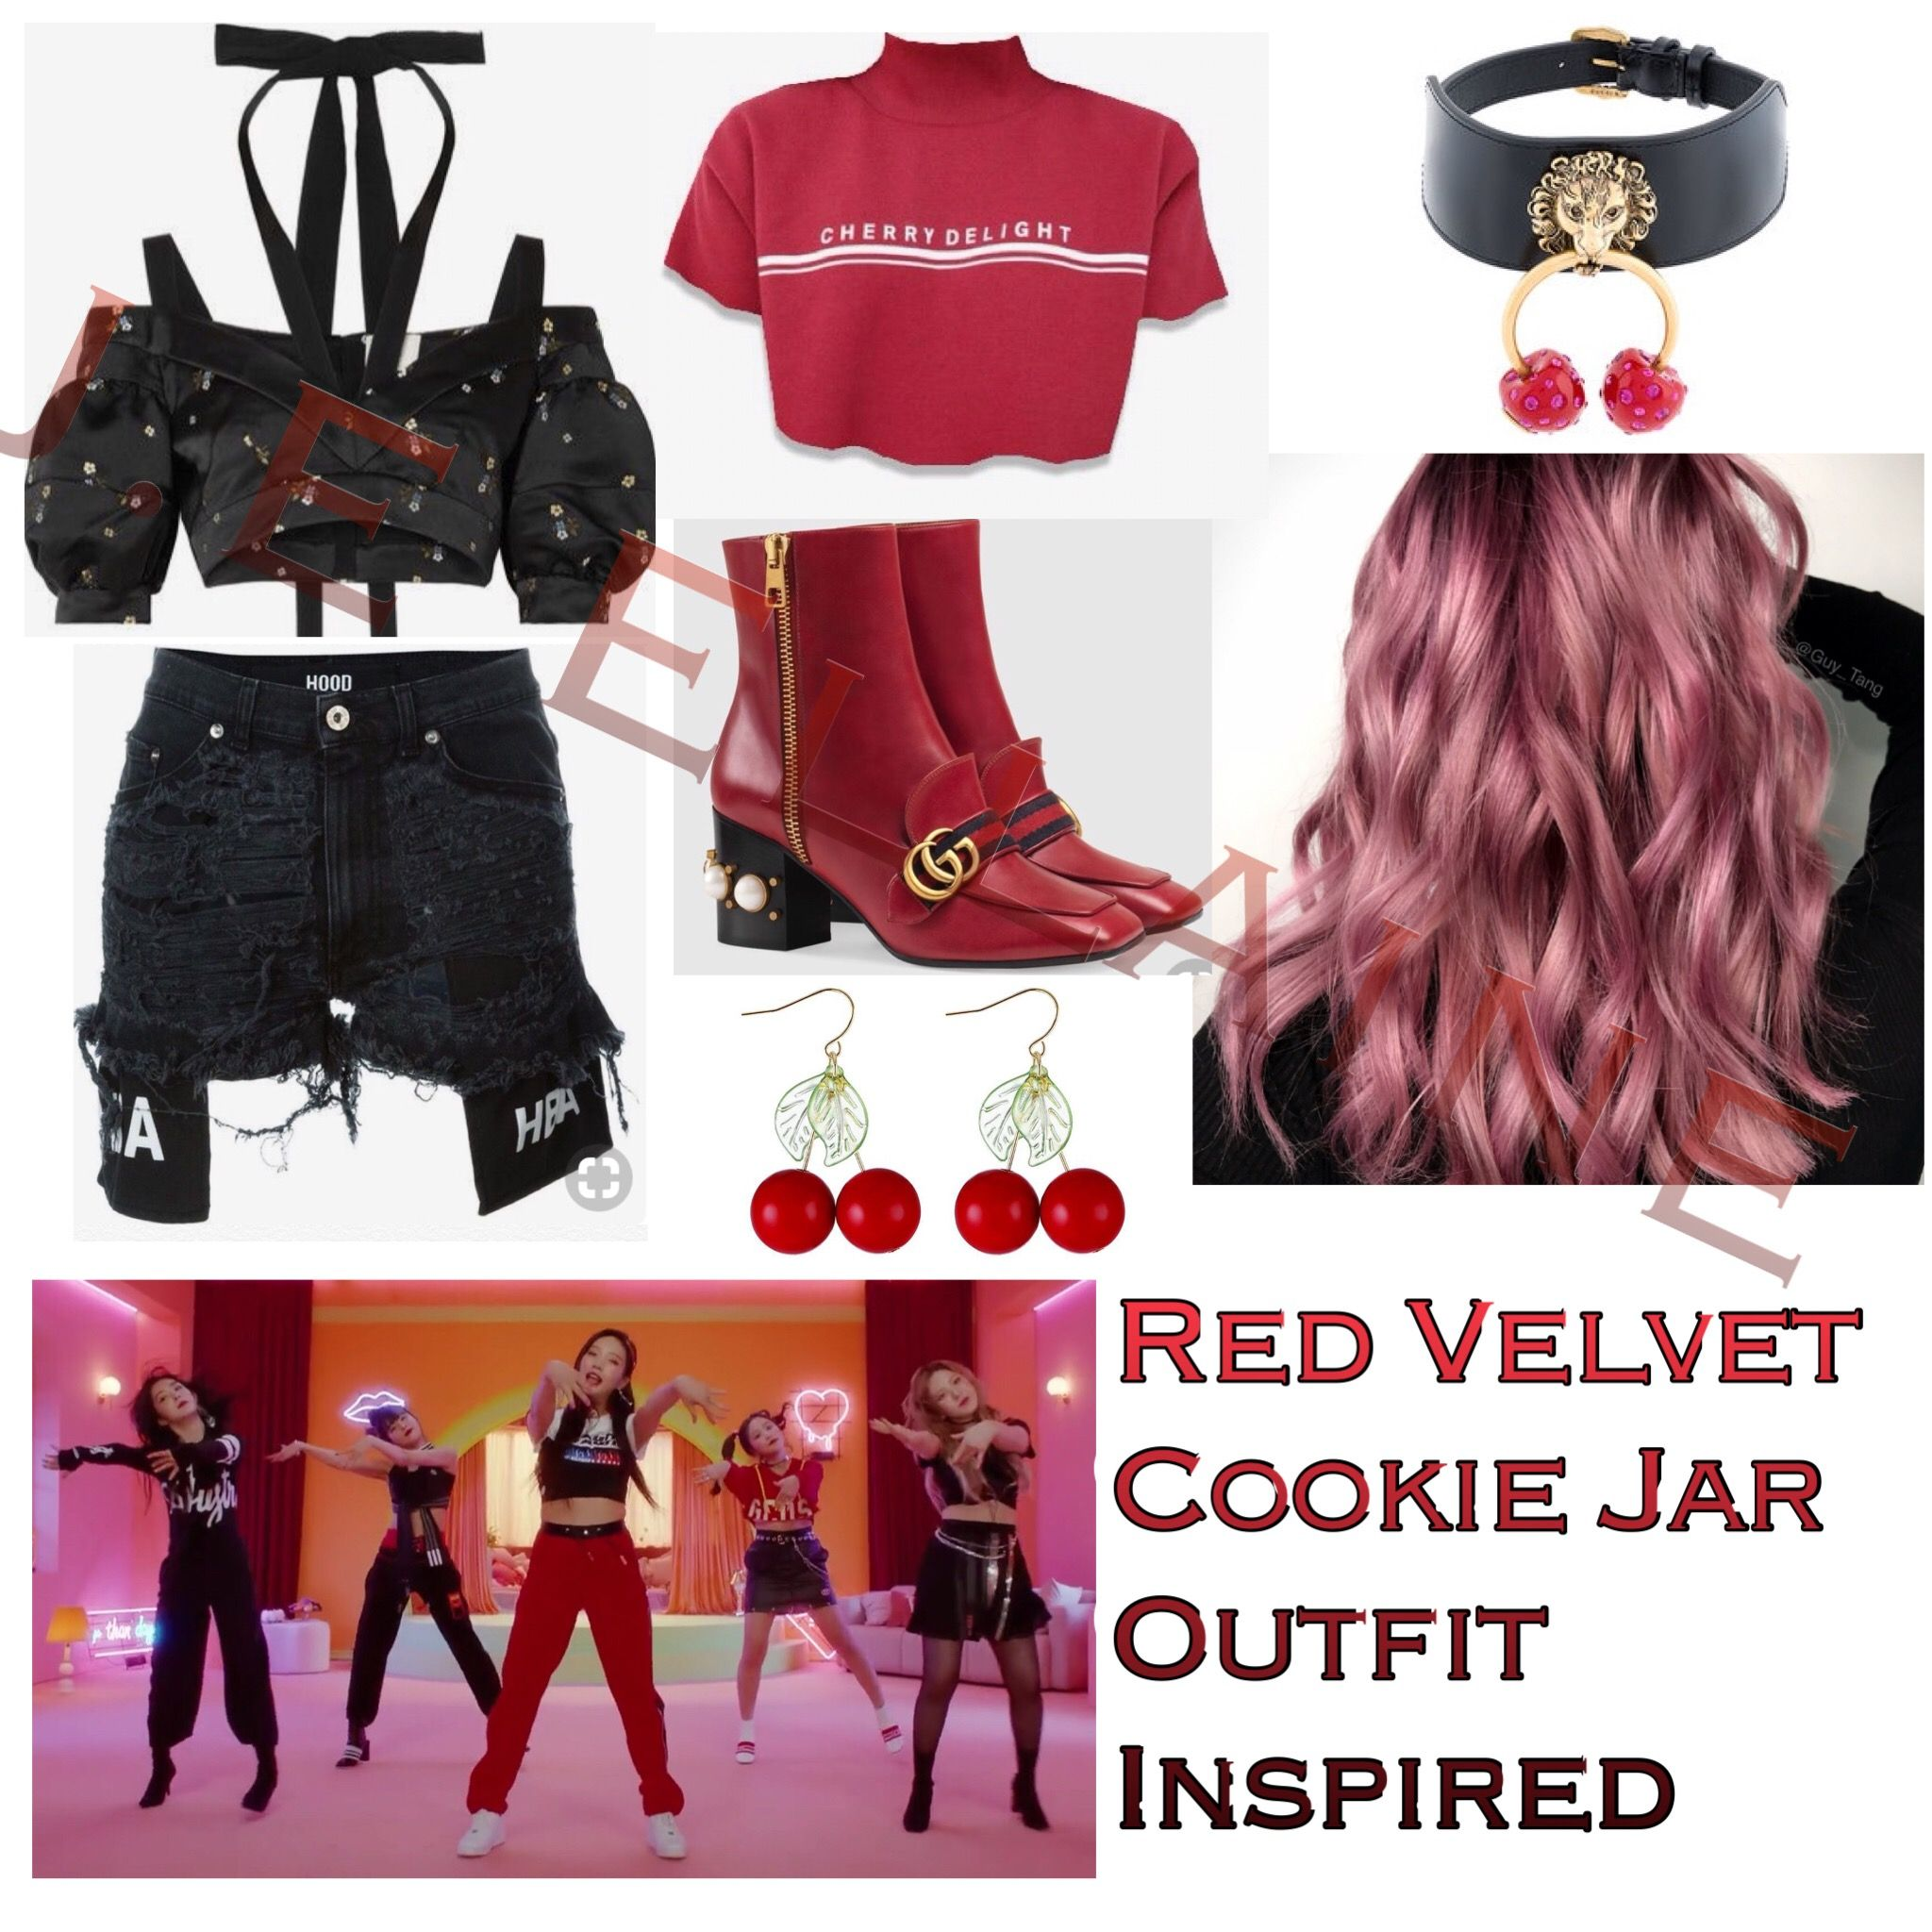 Red Velvet Cookie Jar Outfit  Kpop outfits, Kpop fashion outfits